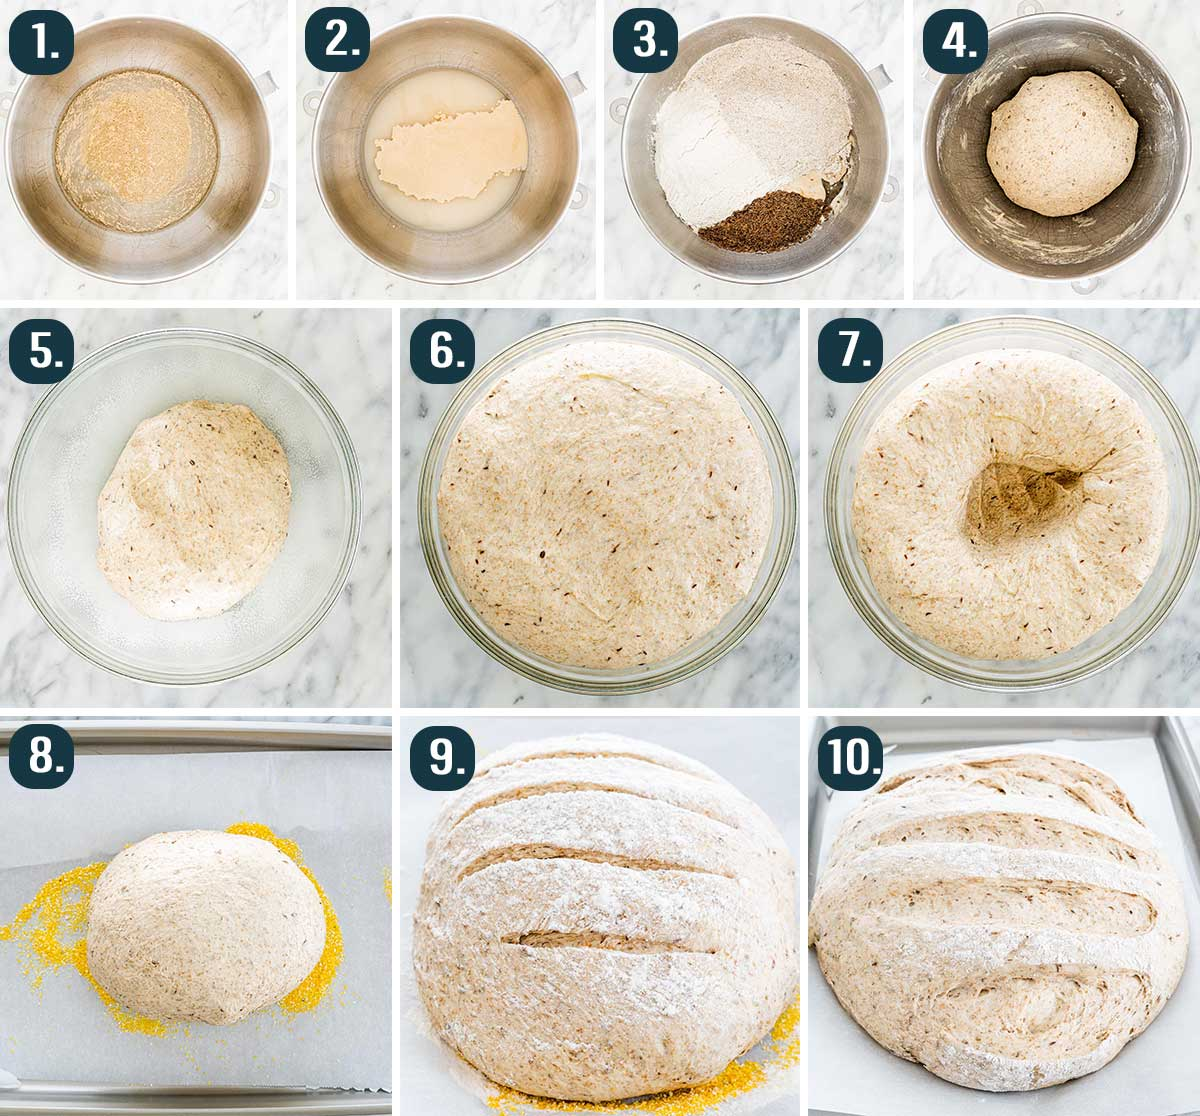 process shots for showing how to make a rye bread